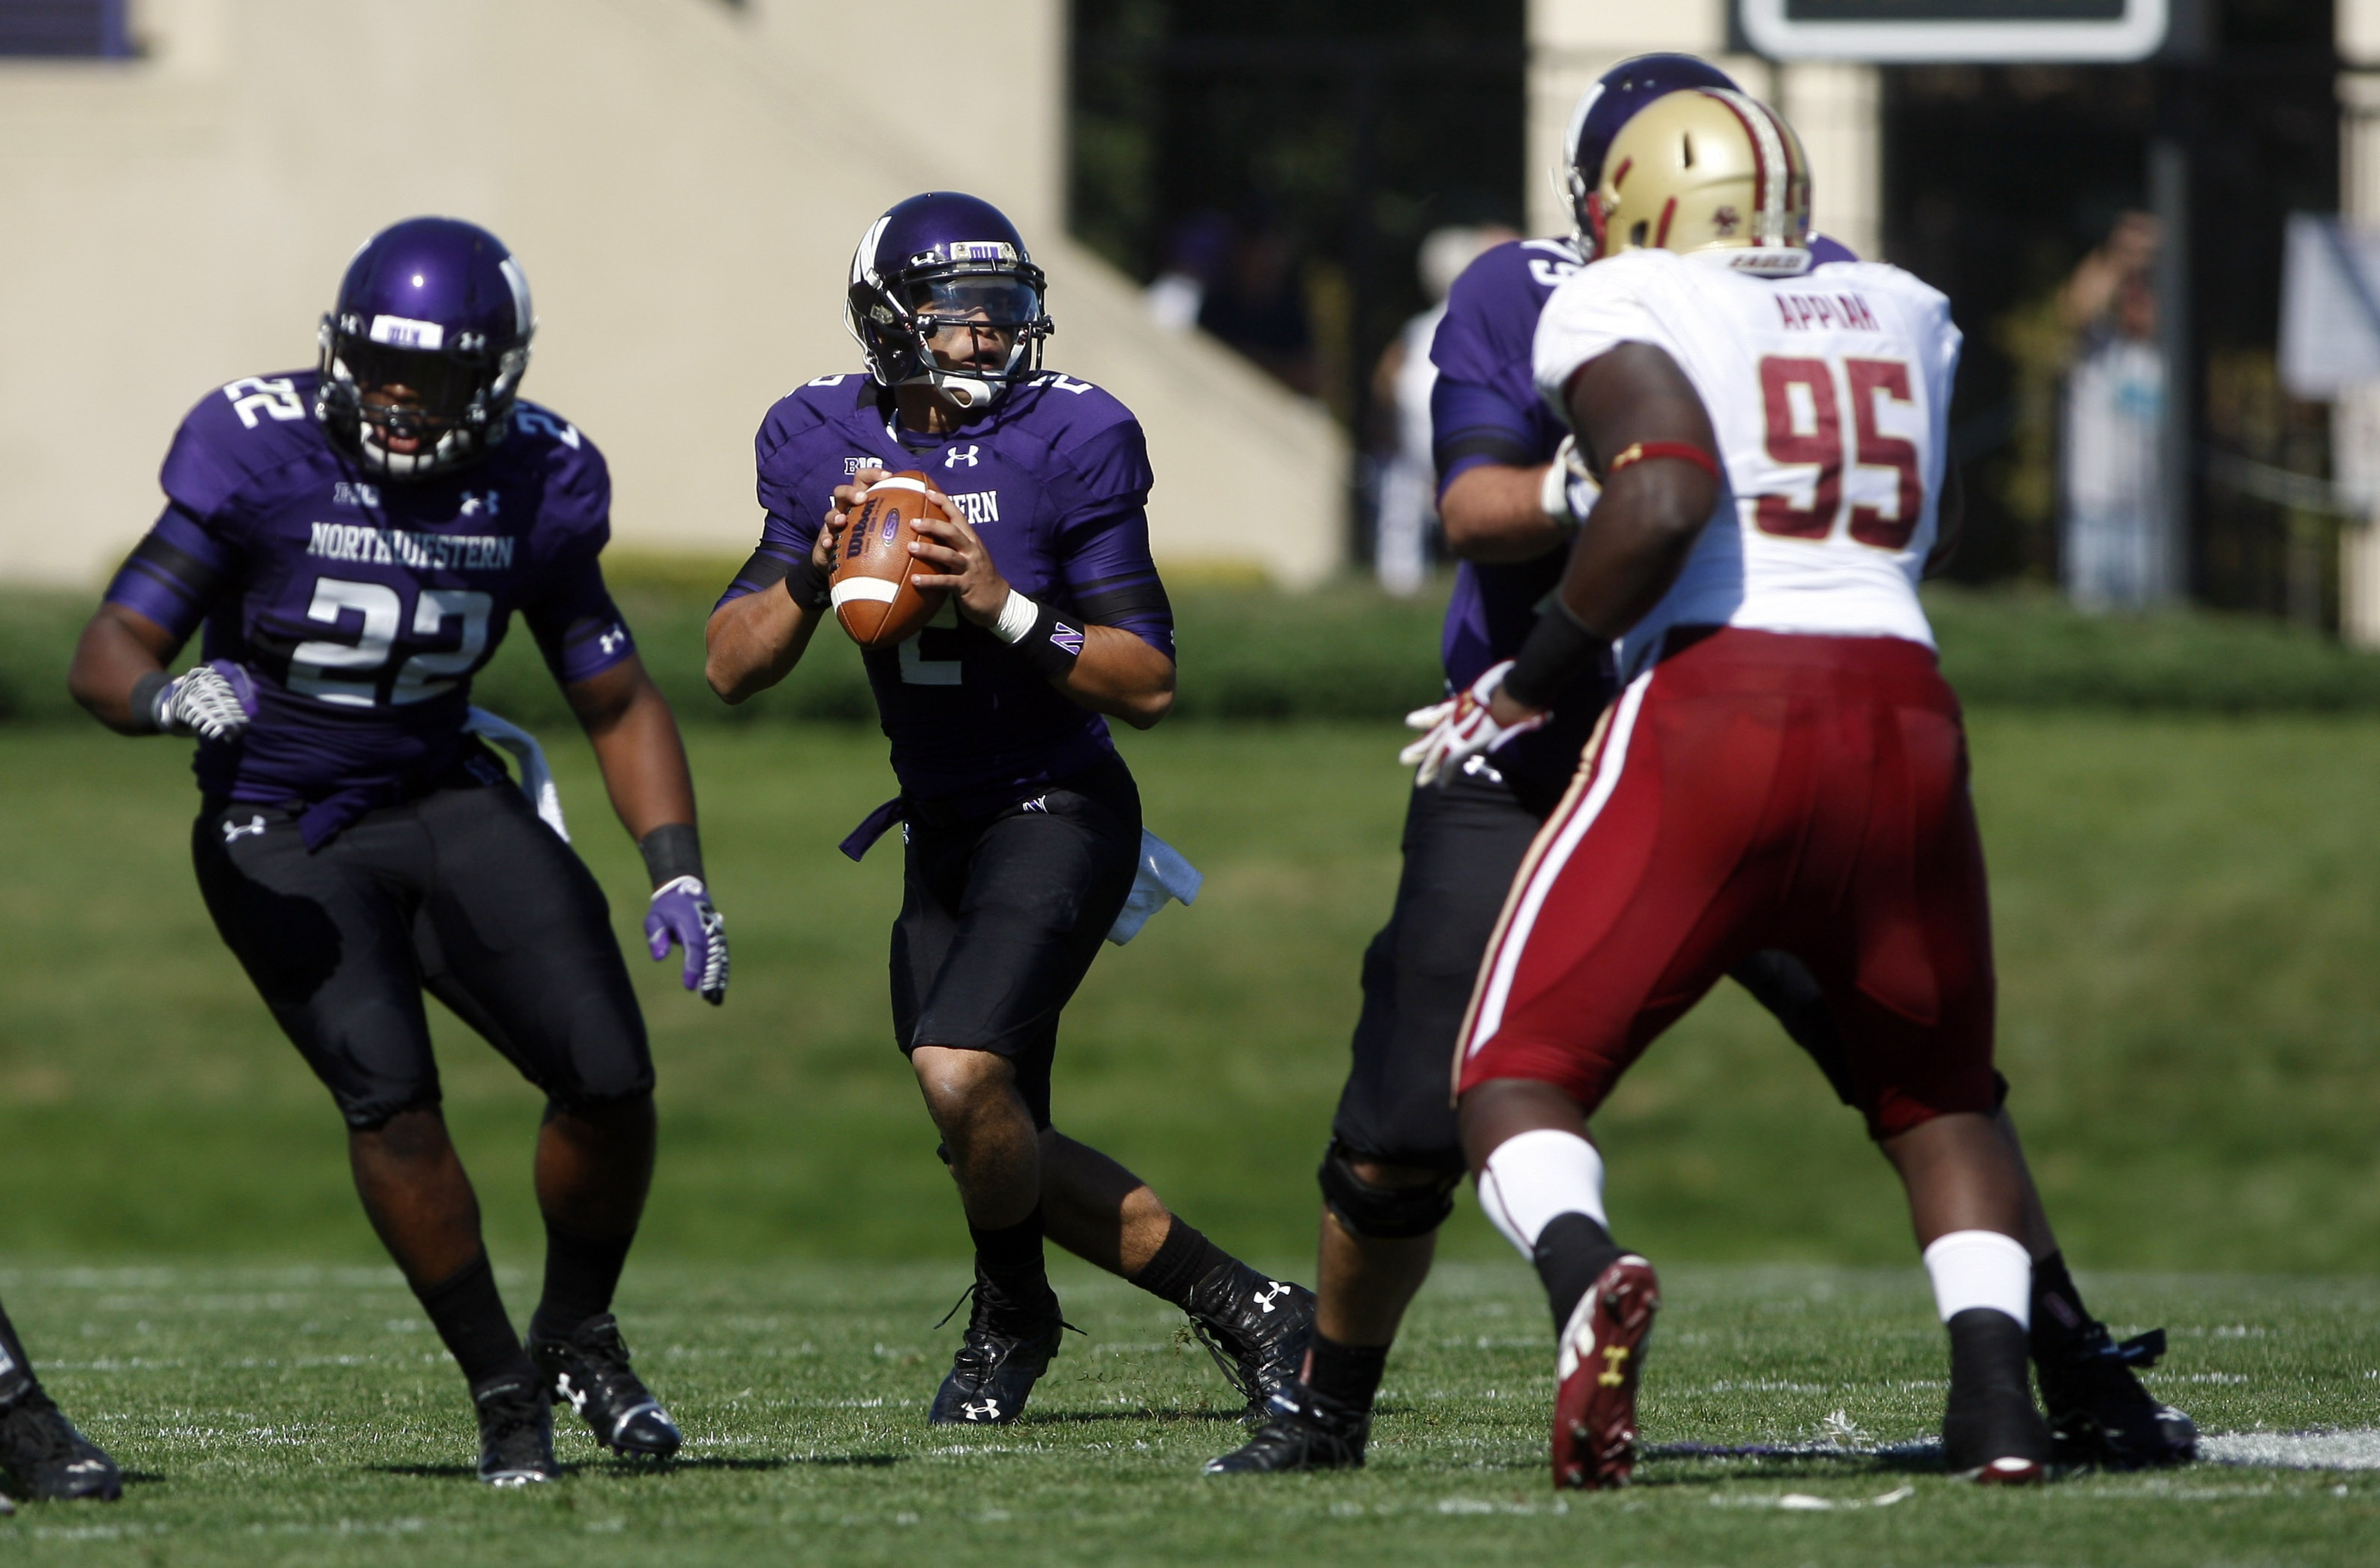 Sep 15, 2012; Evanston, IL, USA; Northwestern Wildcats quarterback Kain Colter (2) drops back to pass against the Boston College Eagles during the first quarter at Ryan Field.  Mandatory Credit: Jerry Lai-US PRESSWIRE